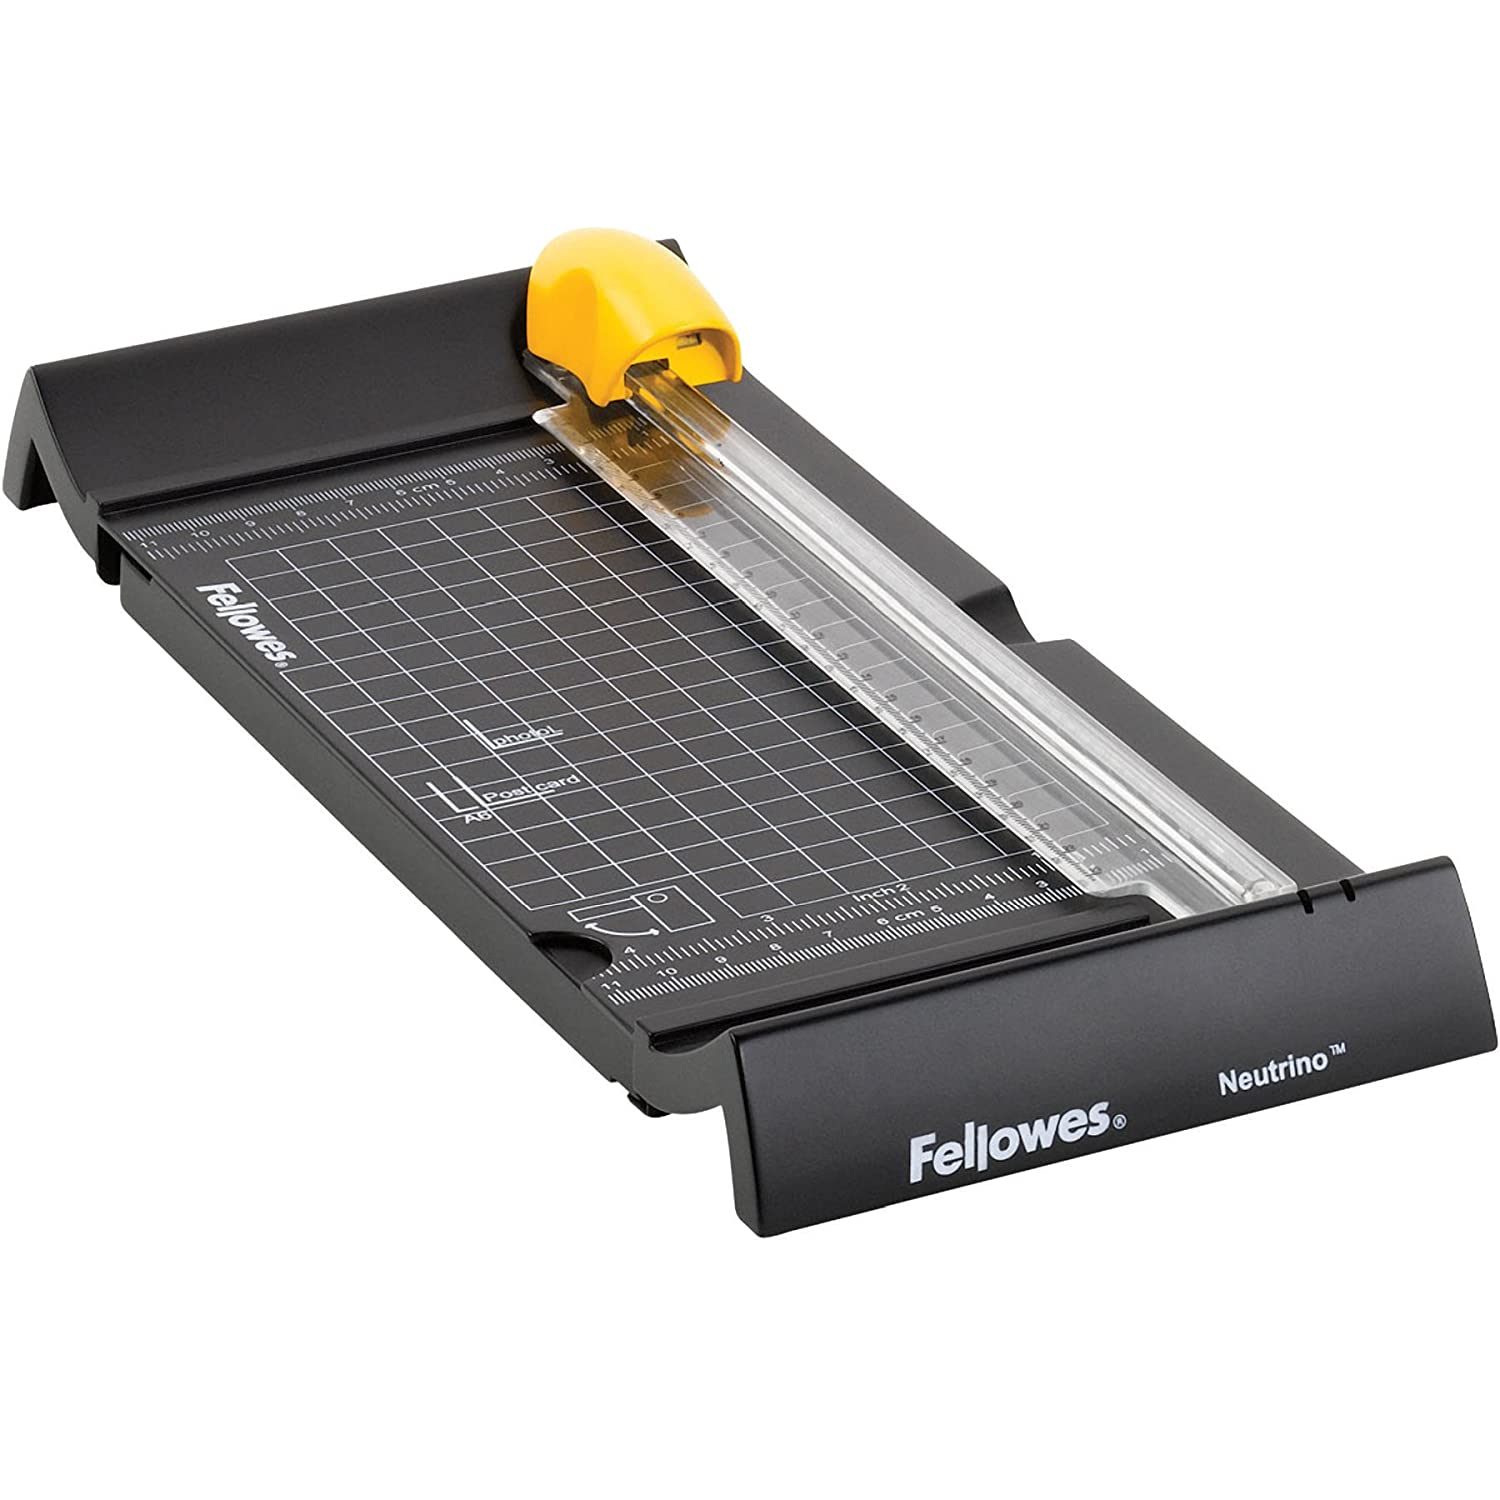 Fellowes Neutrino 90 Personal Rotary Paper Trimmer 5412702